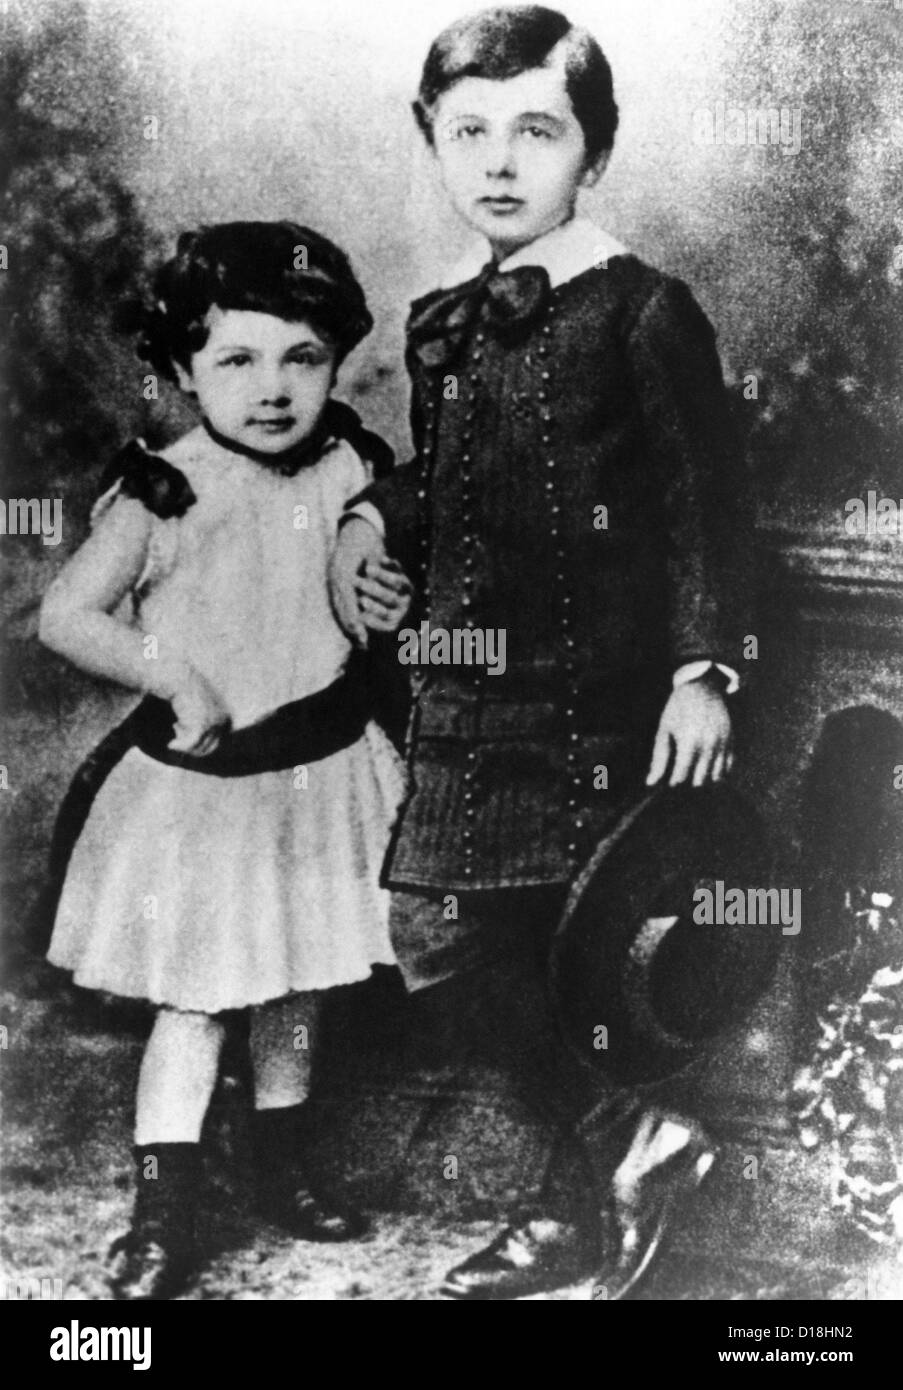 albert einstein about five years old with his younger